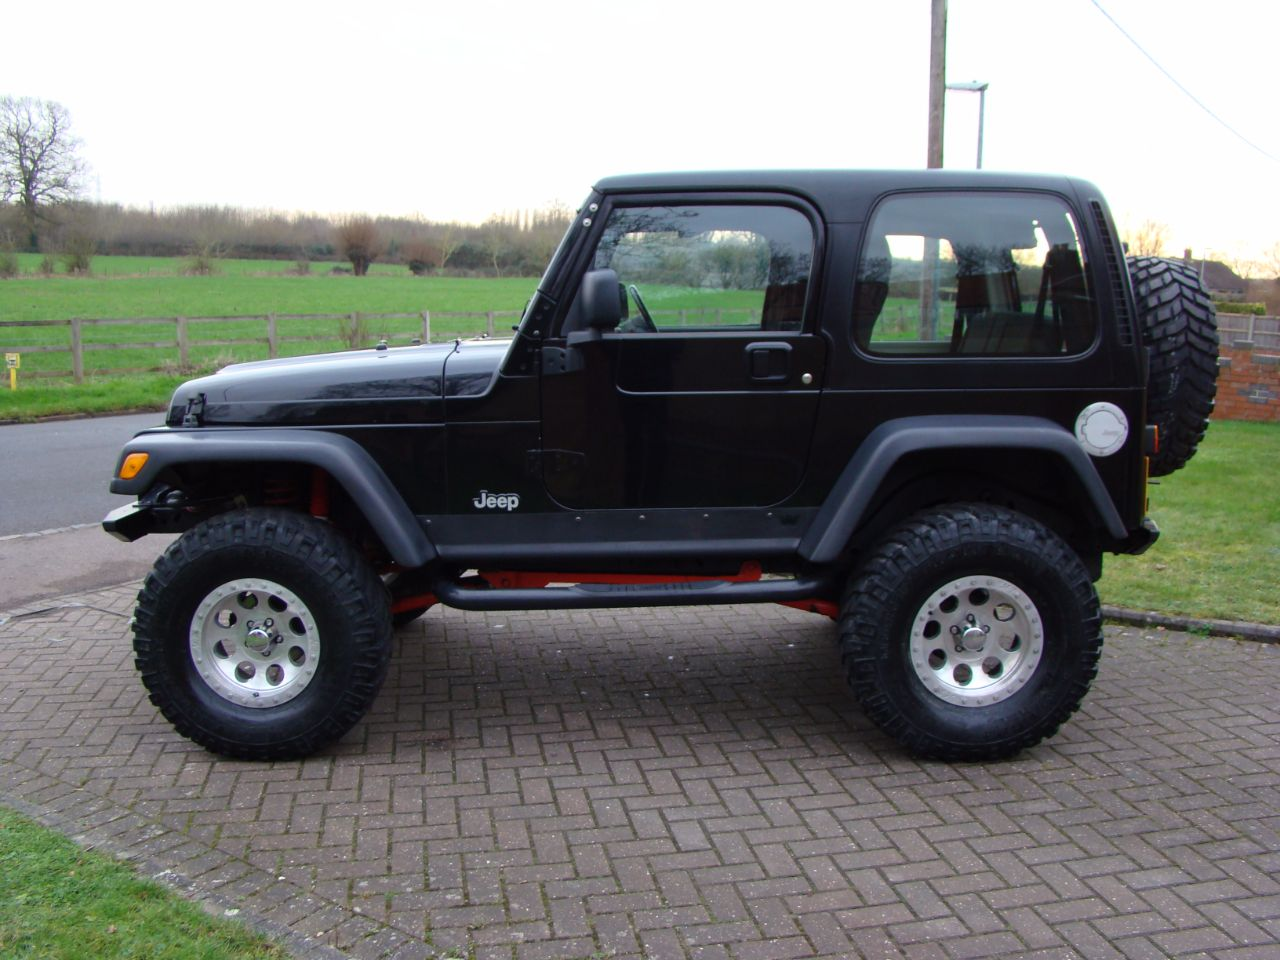 Jeep Wrangler 40 Jamboree 2dr For Sale In Luton